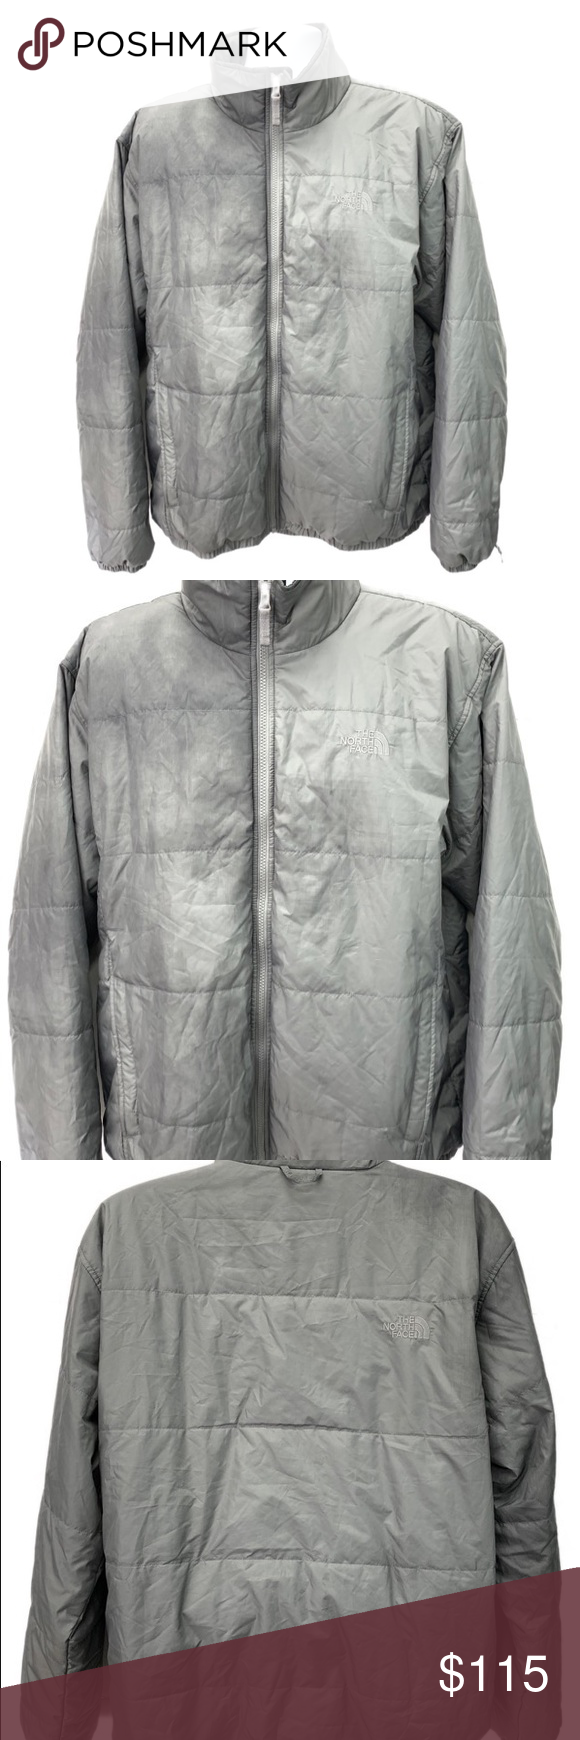 The North Face Puffer Jacket Xl Gray An7l The North Face Puffer Jacket Xl Gray An7l The North Face Jackets Coa North Face Puffer Jacket The North Face Puffer [ 1740 x 580 Pixel ]